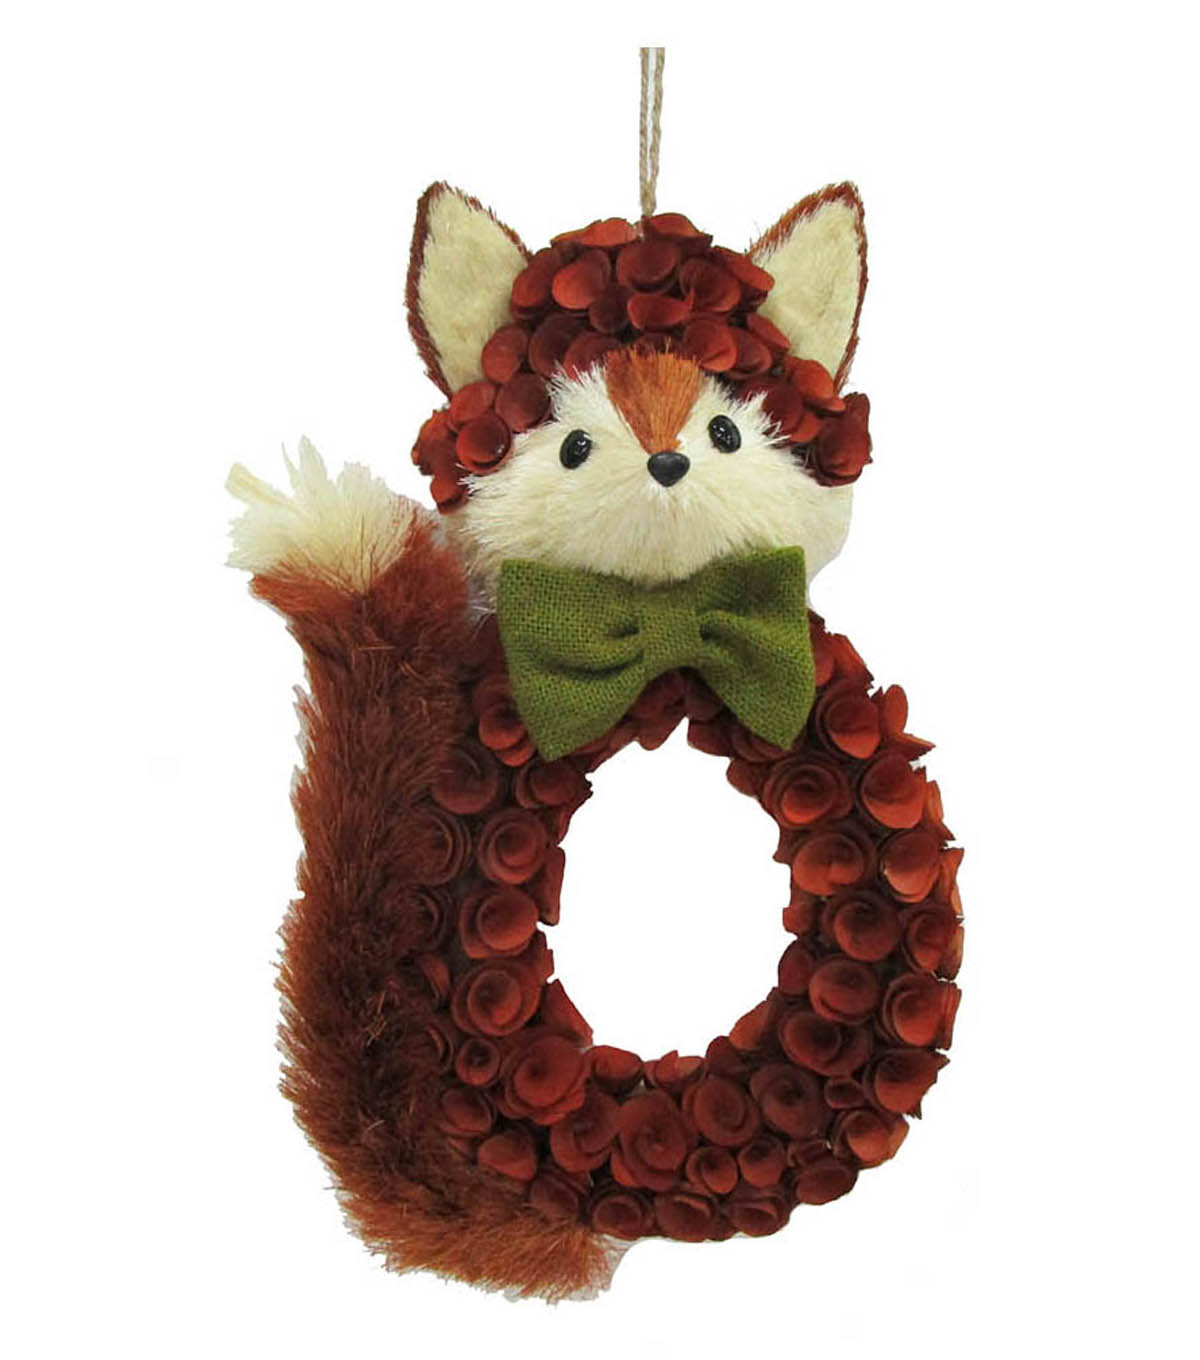 Blooming Autumn Wood Flower & Sisal Fox Wreath